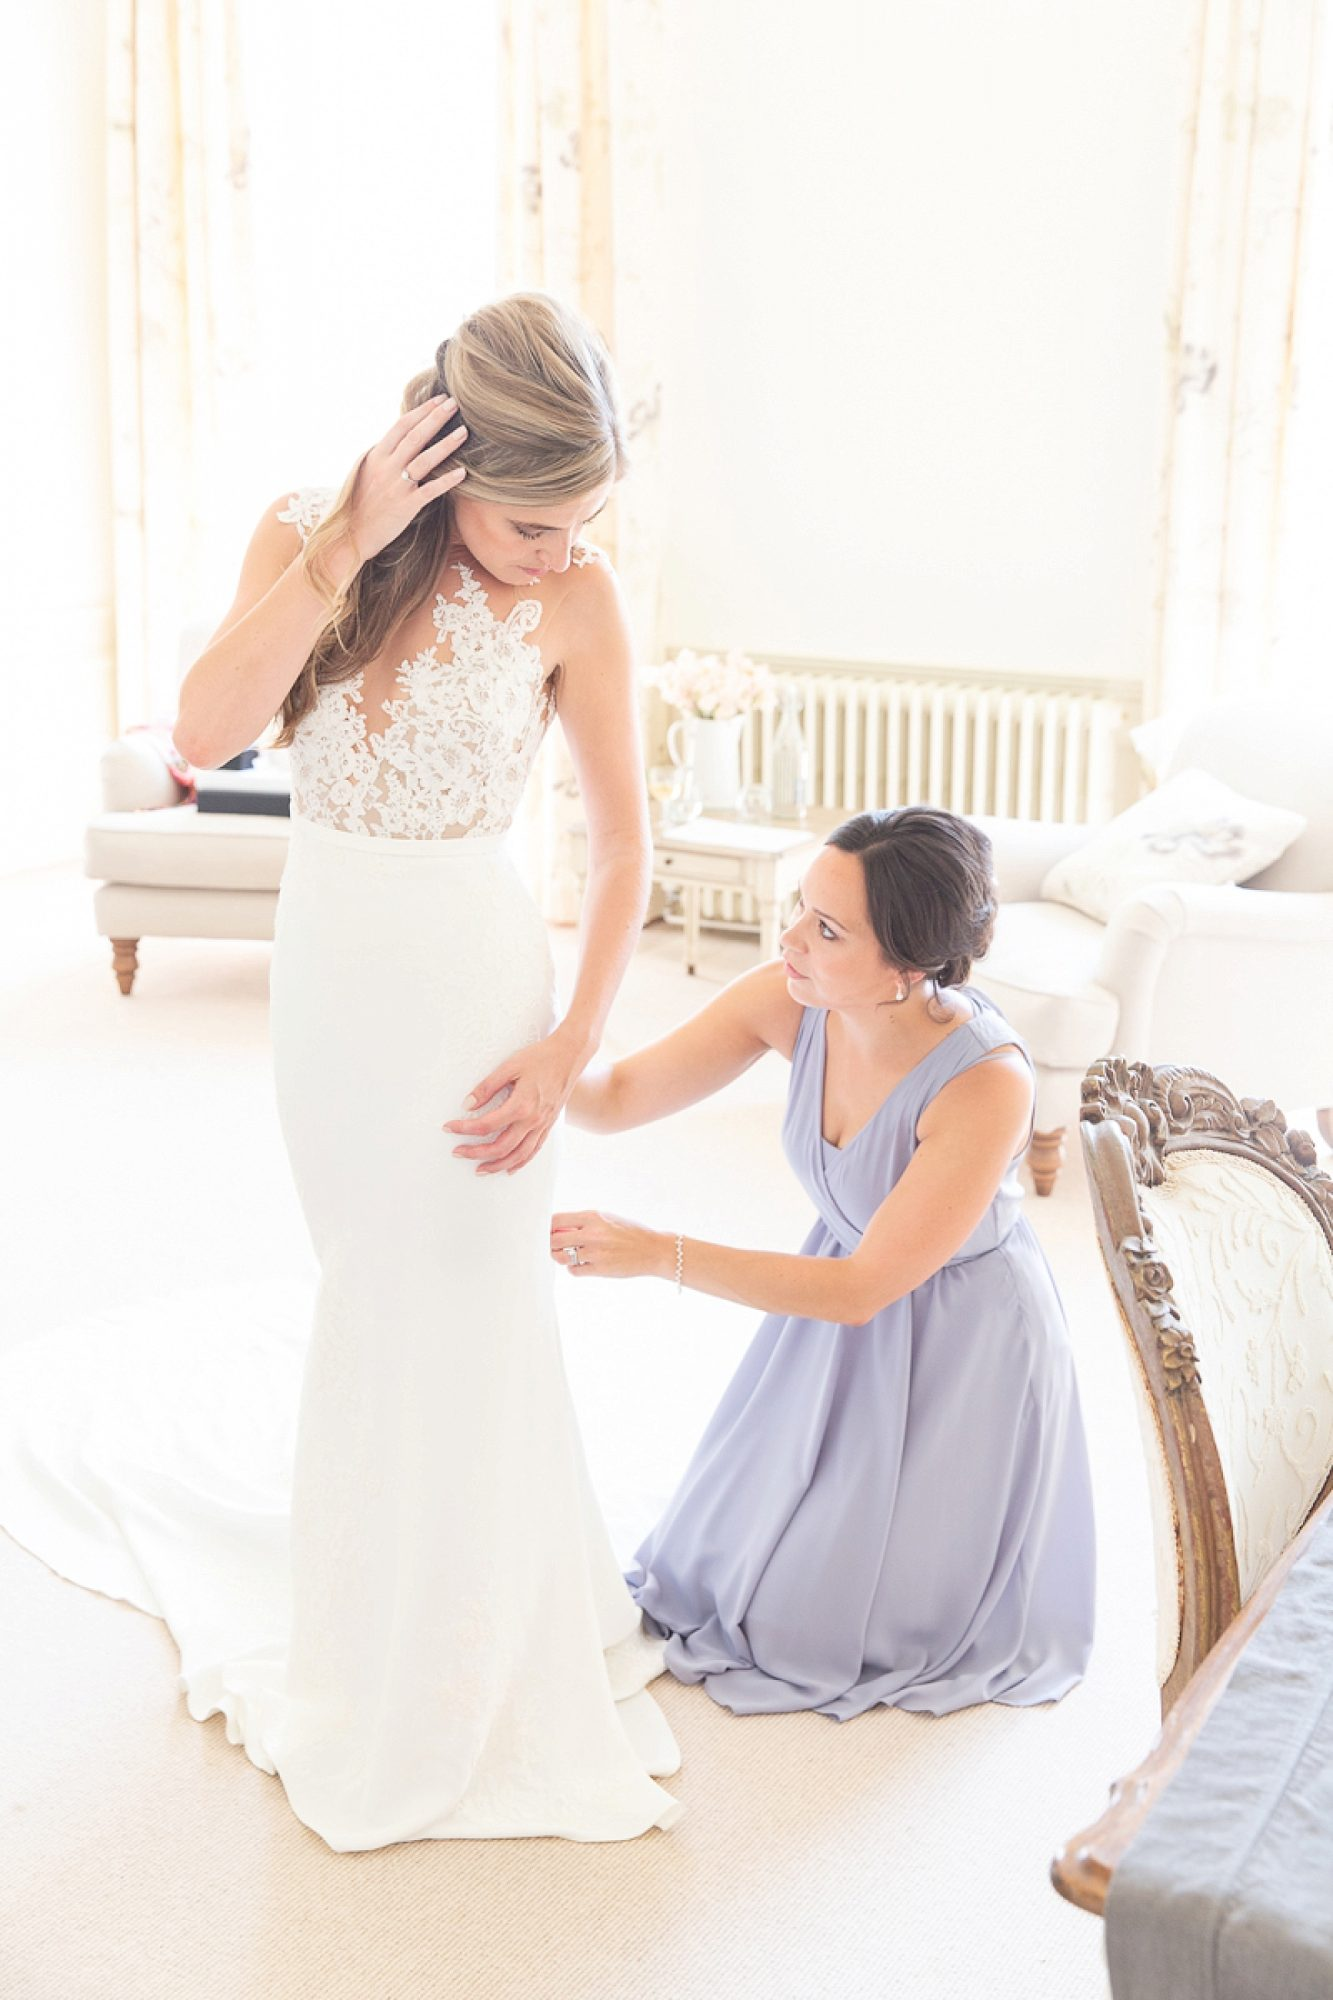 Bride turns holding hair to kneeling bridesmaids who fixes her Pronovias dress